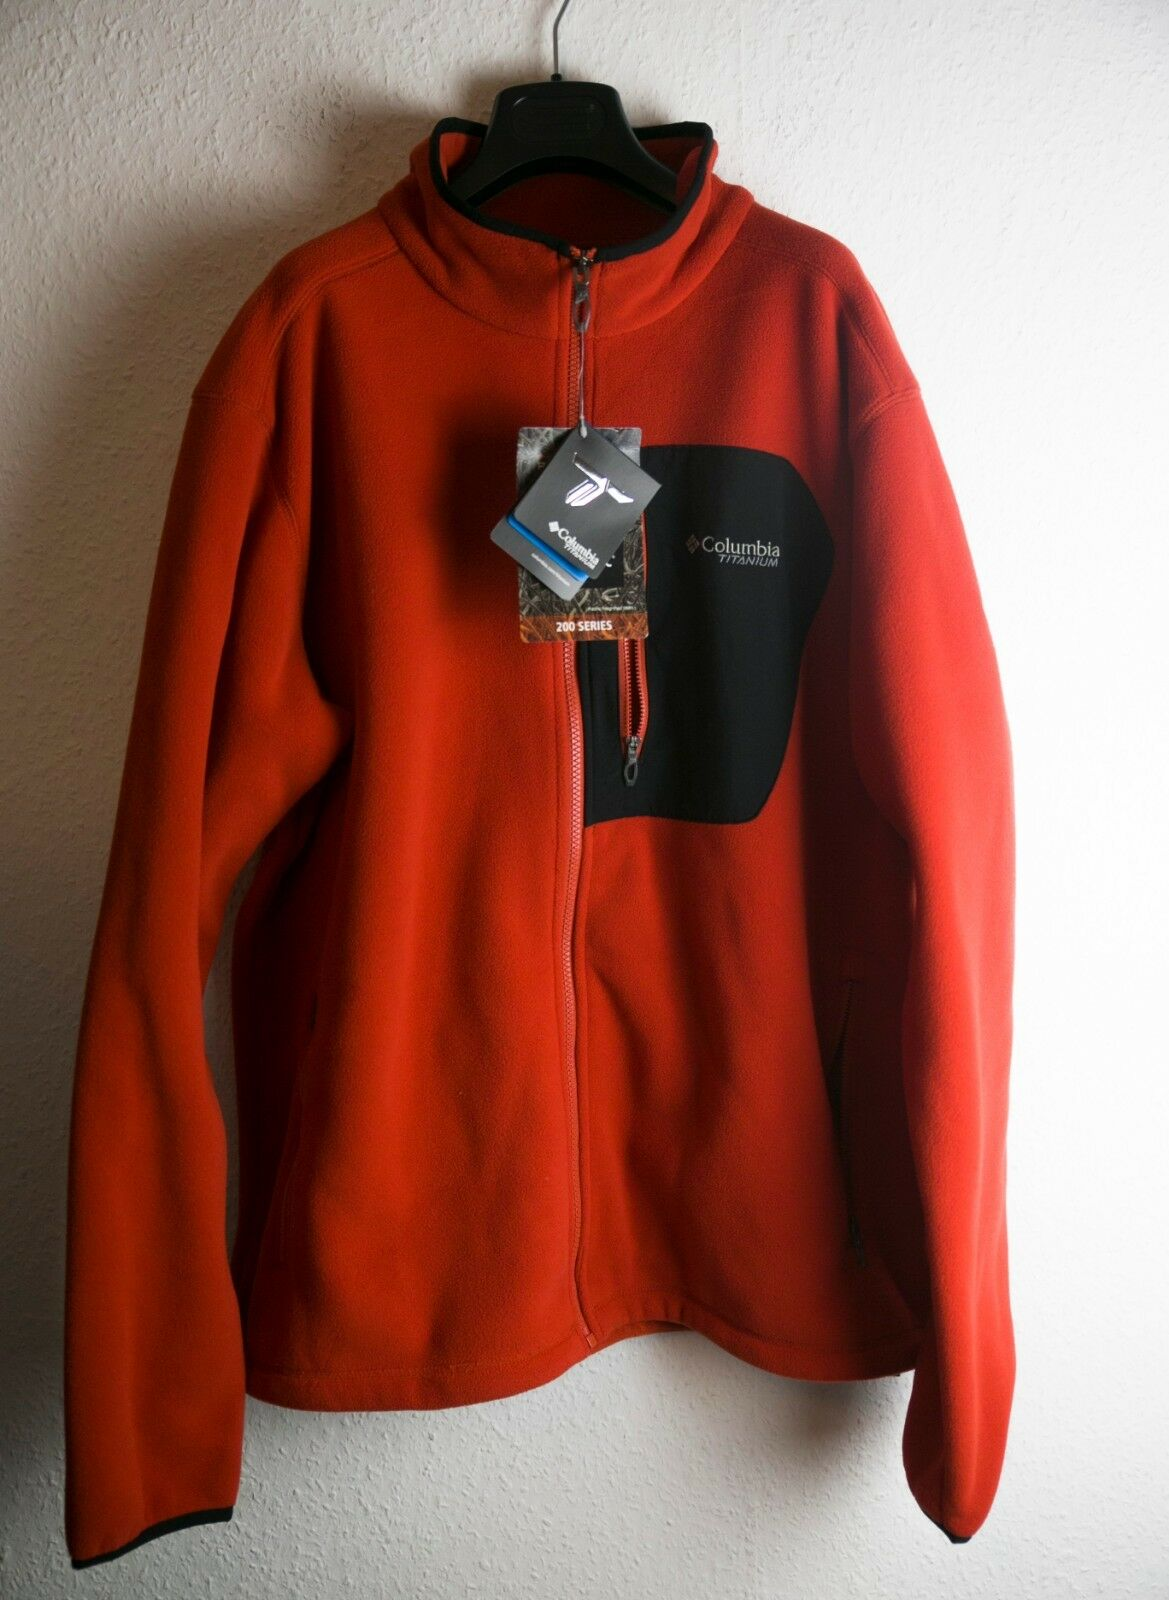 Columbia TITANIUM TITANIO pass 2.0 FLEECE JACKET PILE Flame Rosso Taglia XL